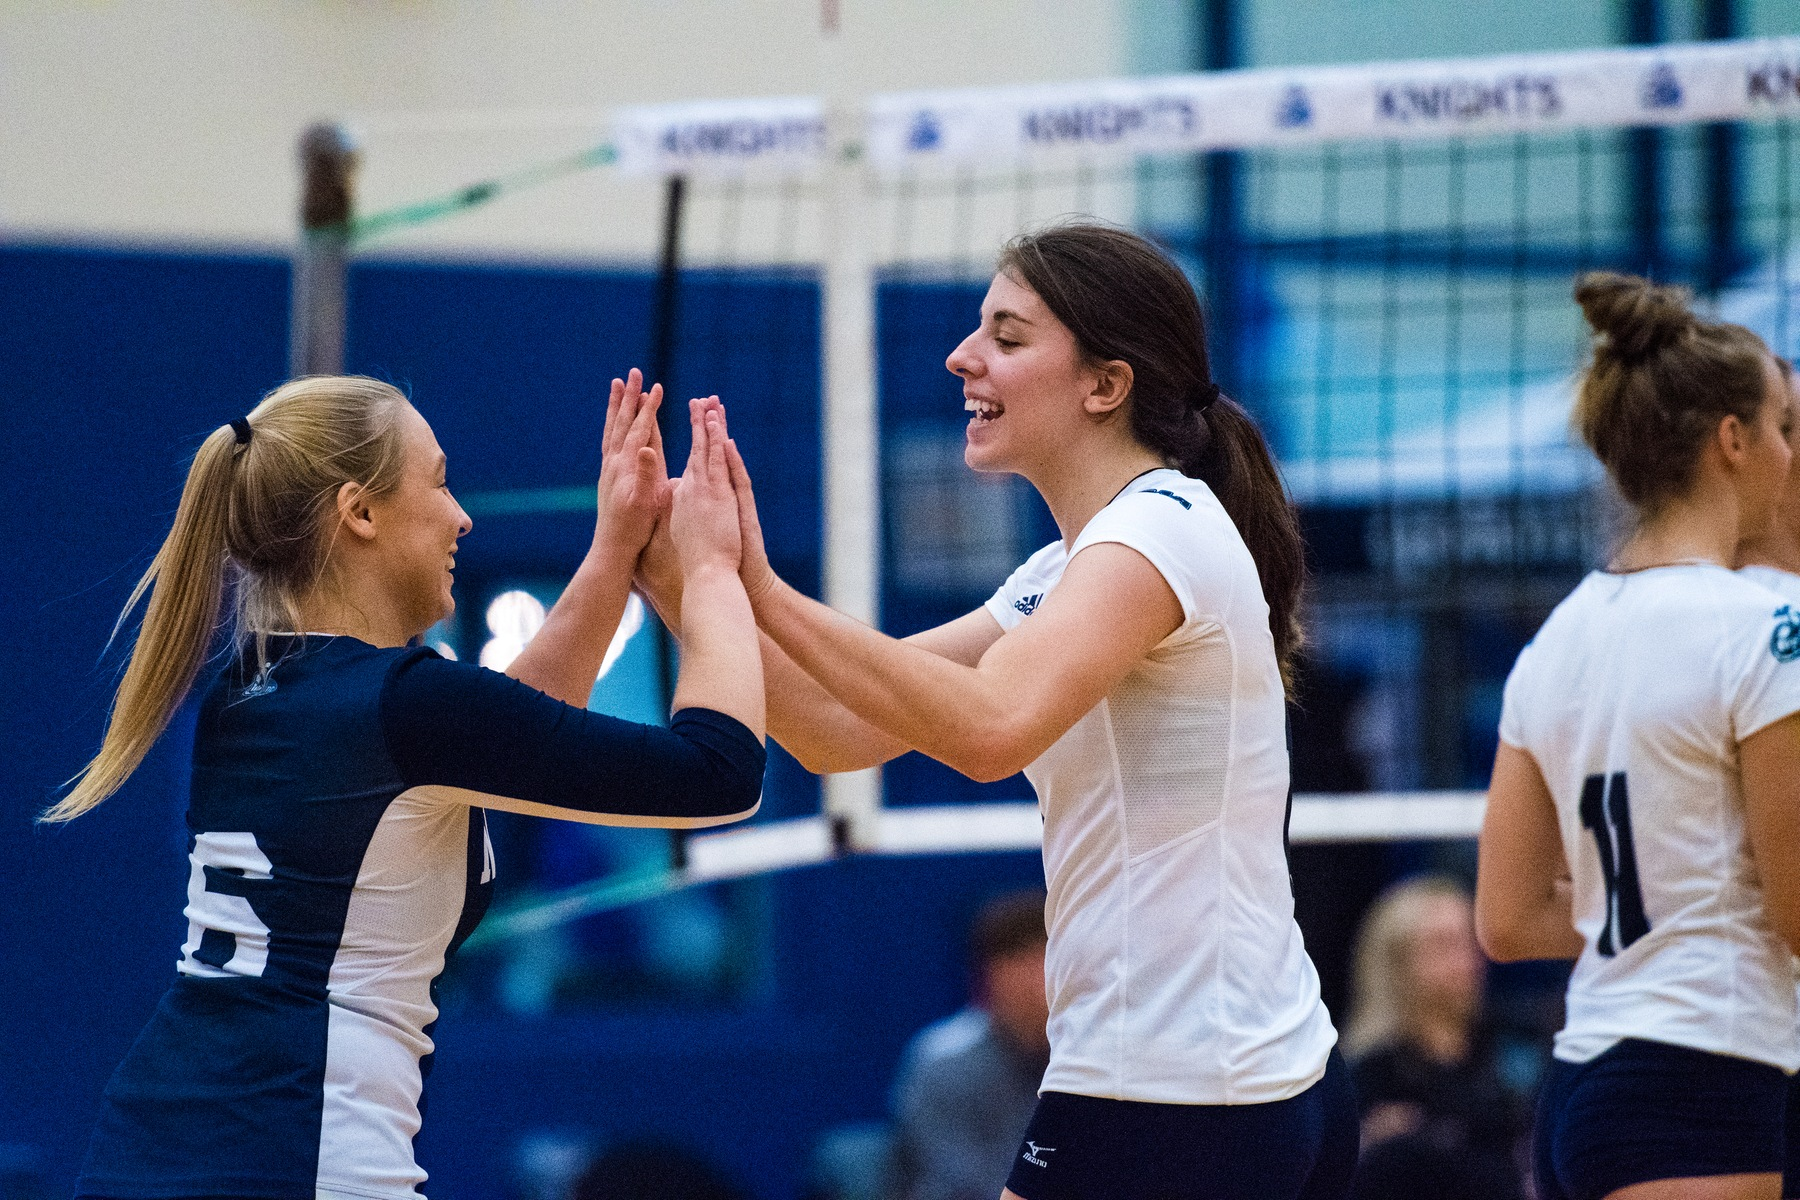 RECAP: Women's Volleyball defeat Royals; finish 2017 at 6-2